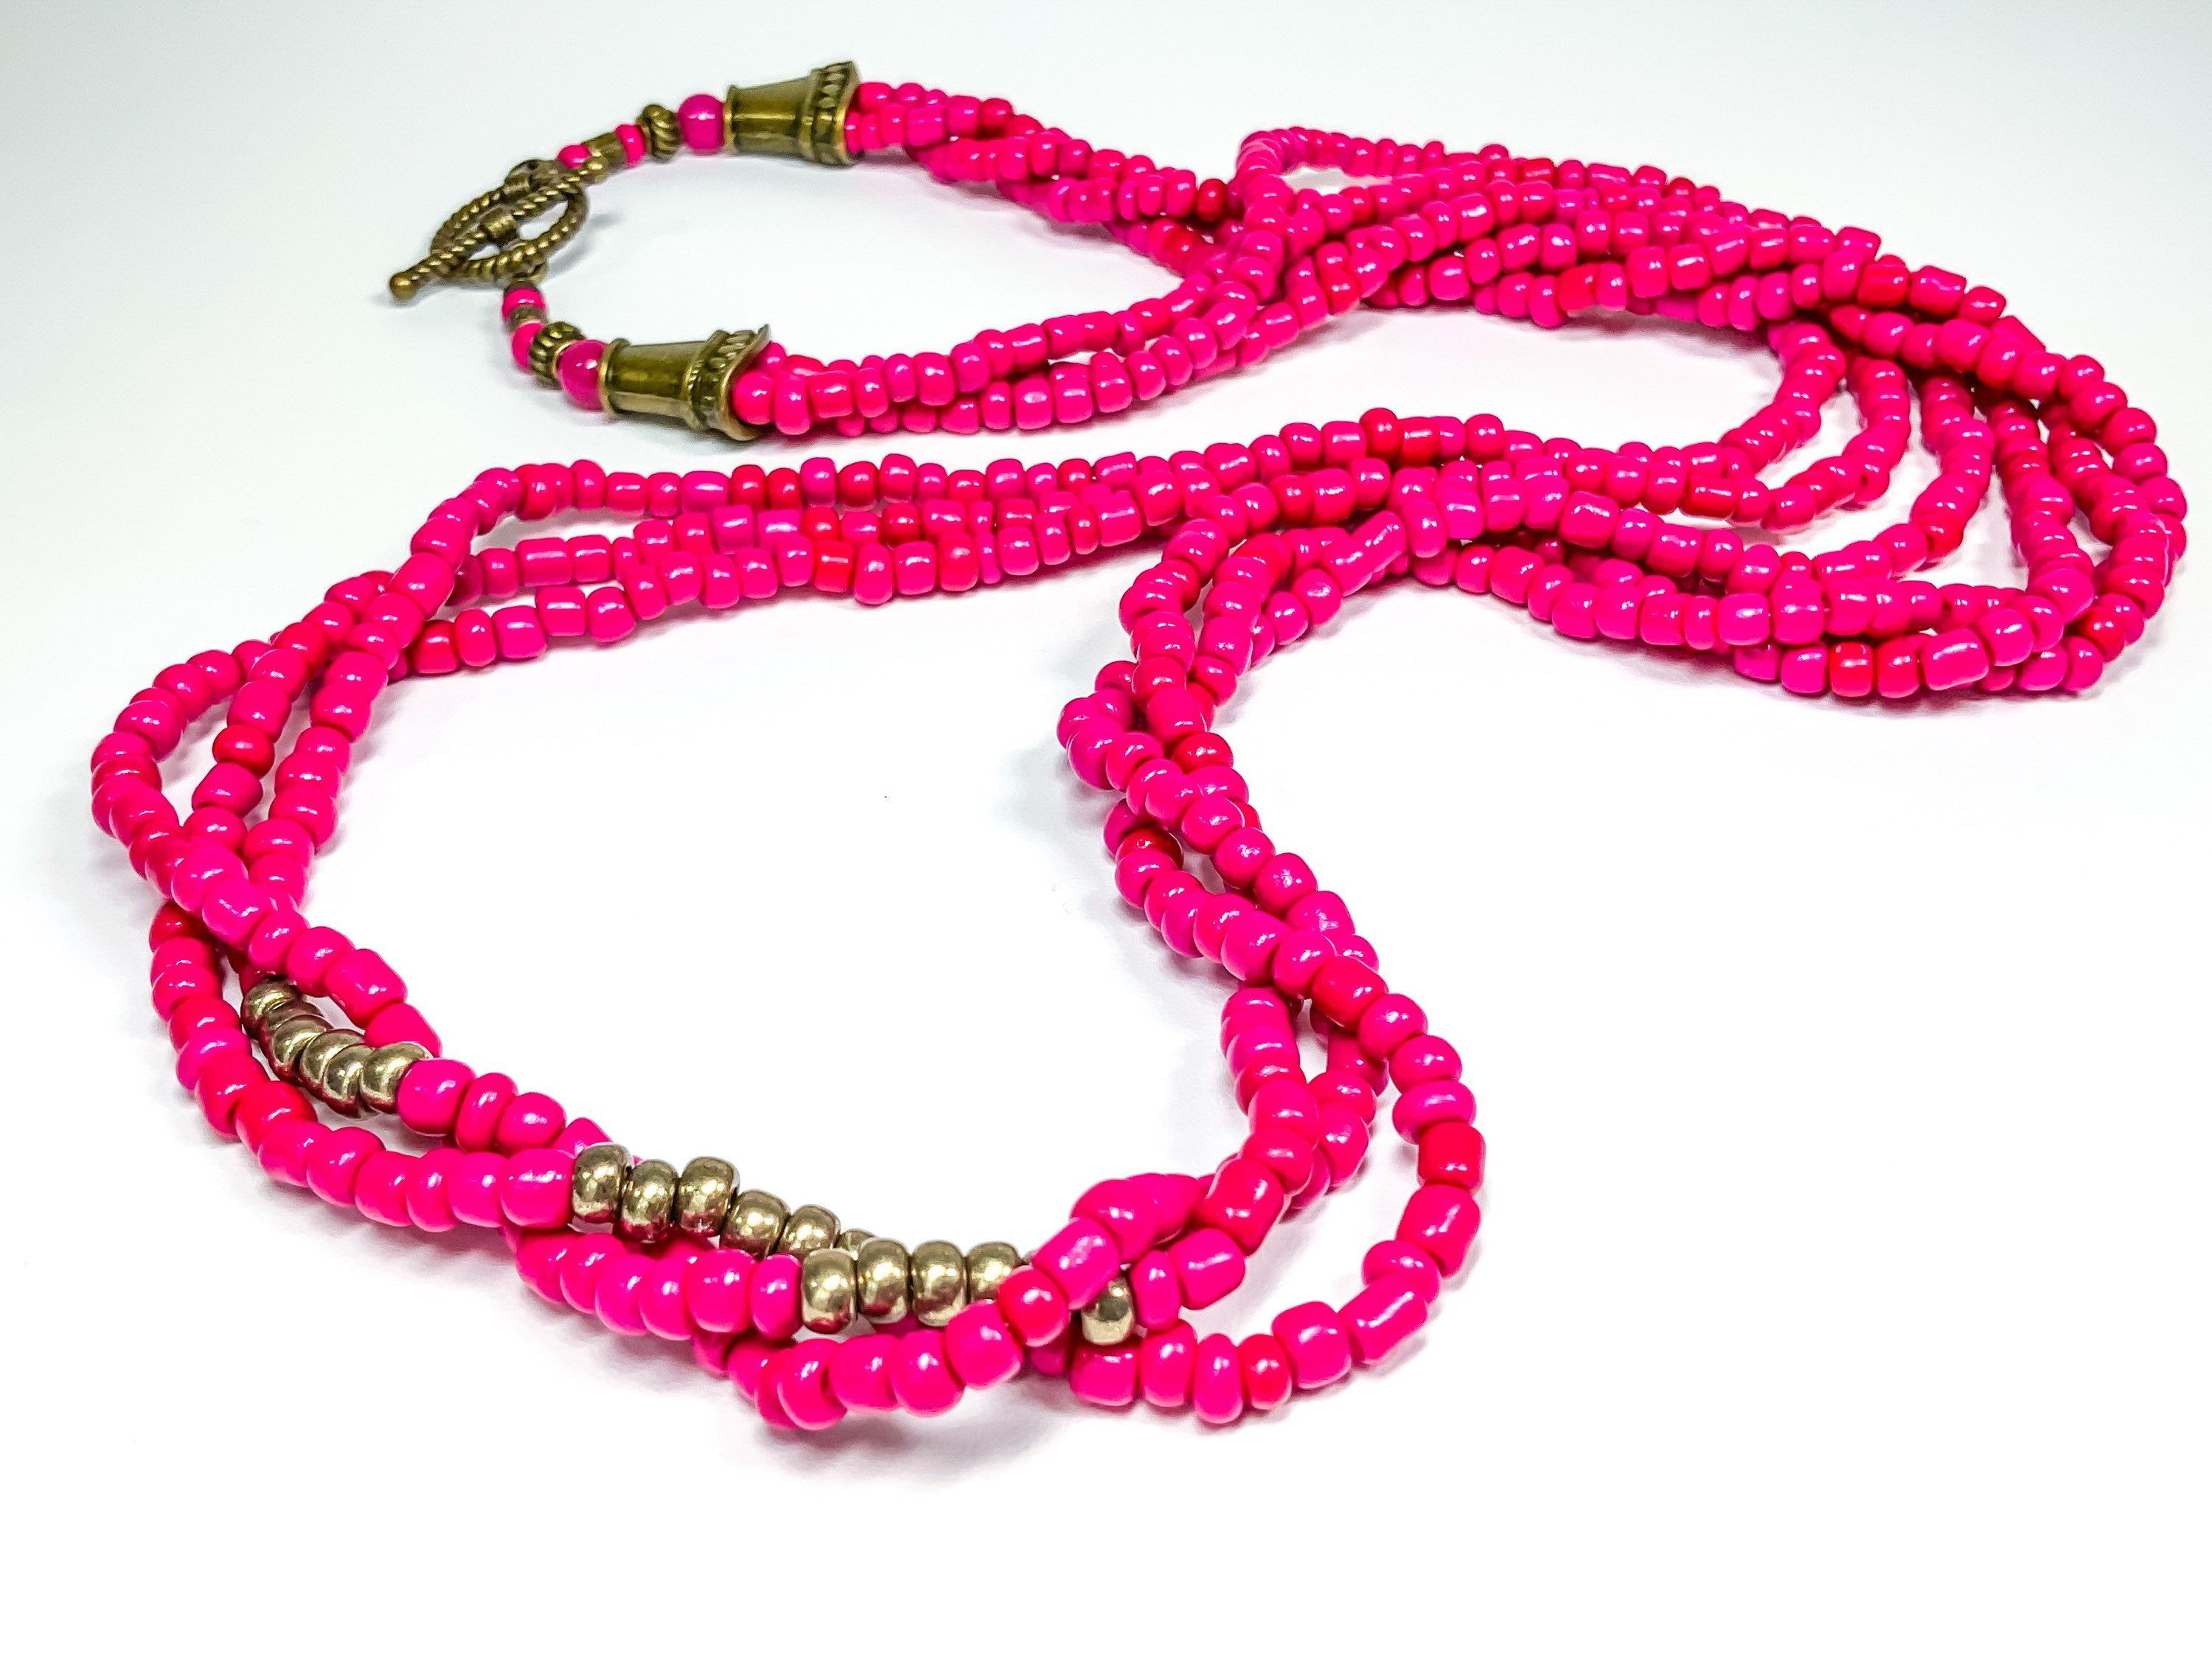 Jade and Crystal Beaded Necklace-Opera Length-Pink Jade and Iridescent Crystal Beads-Long Necklace